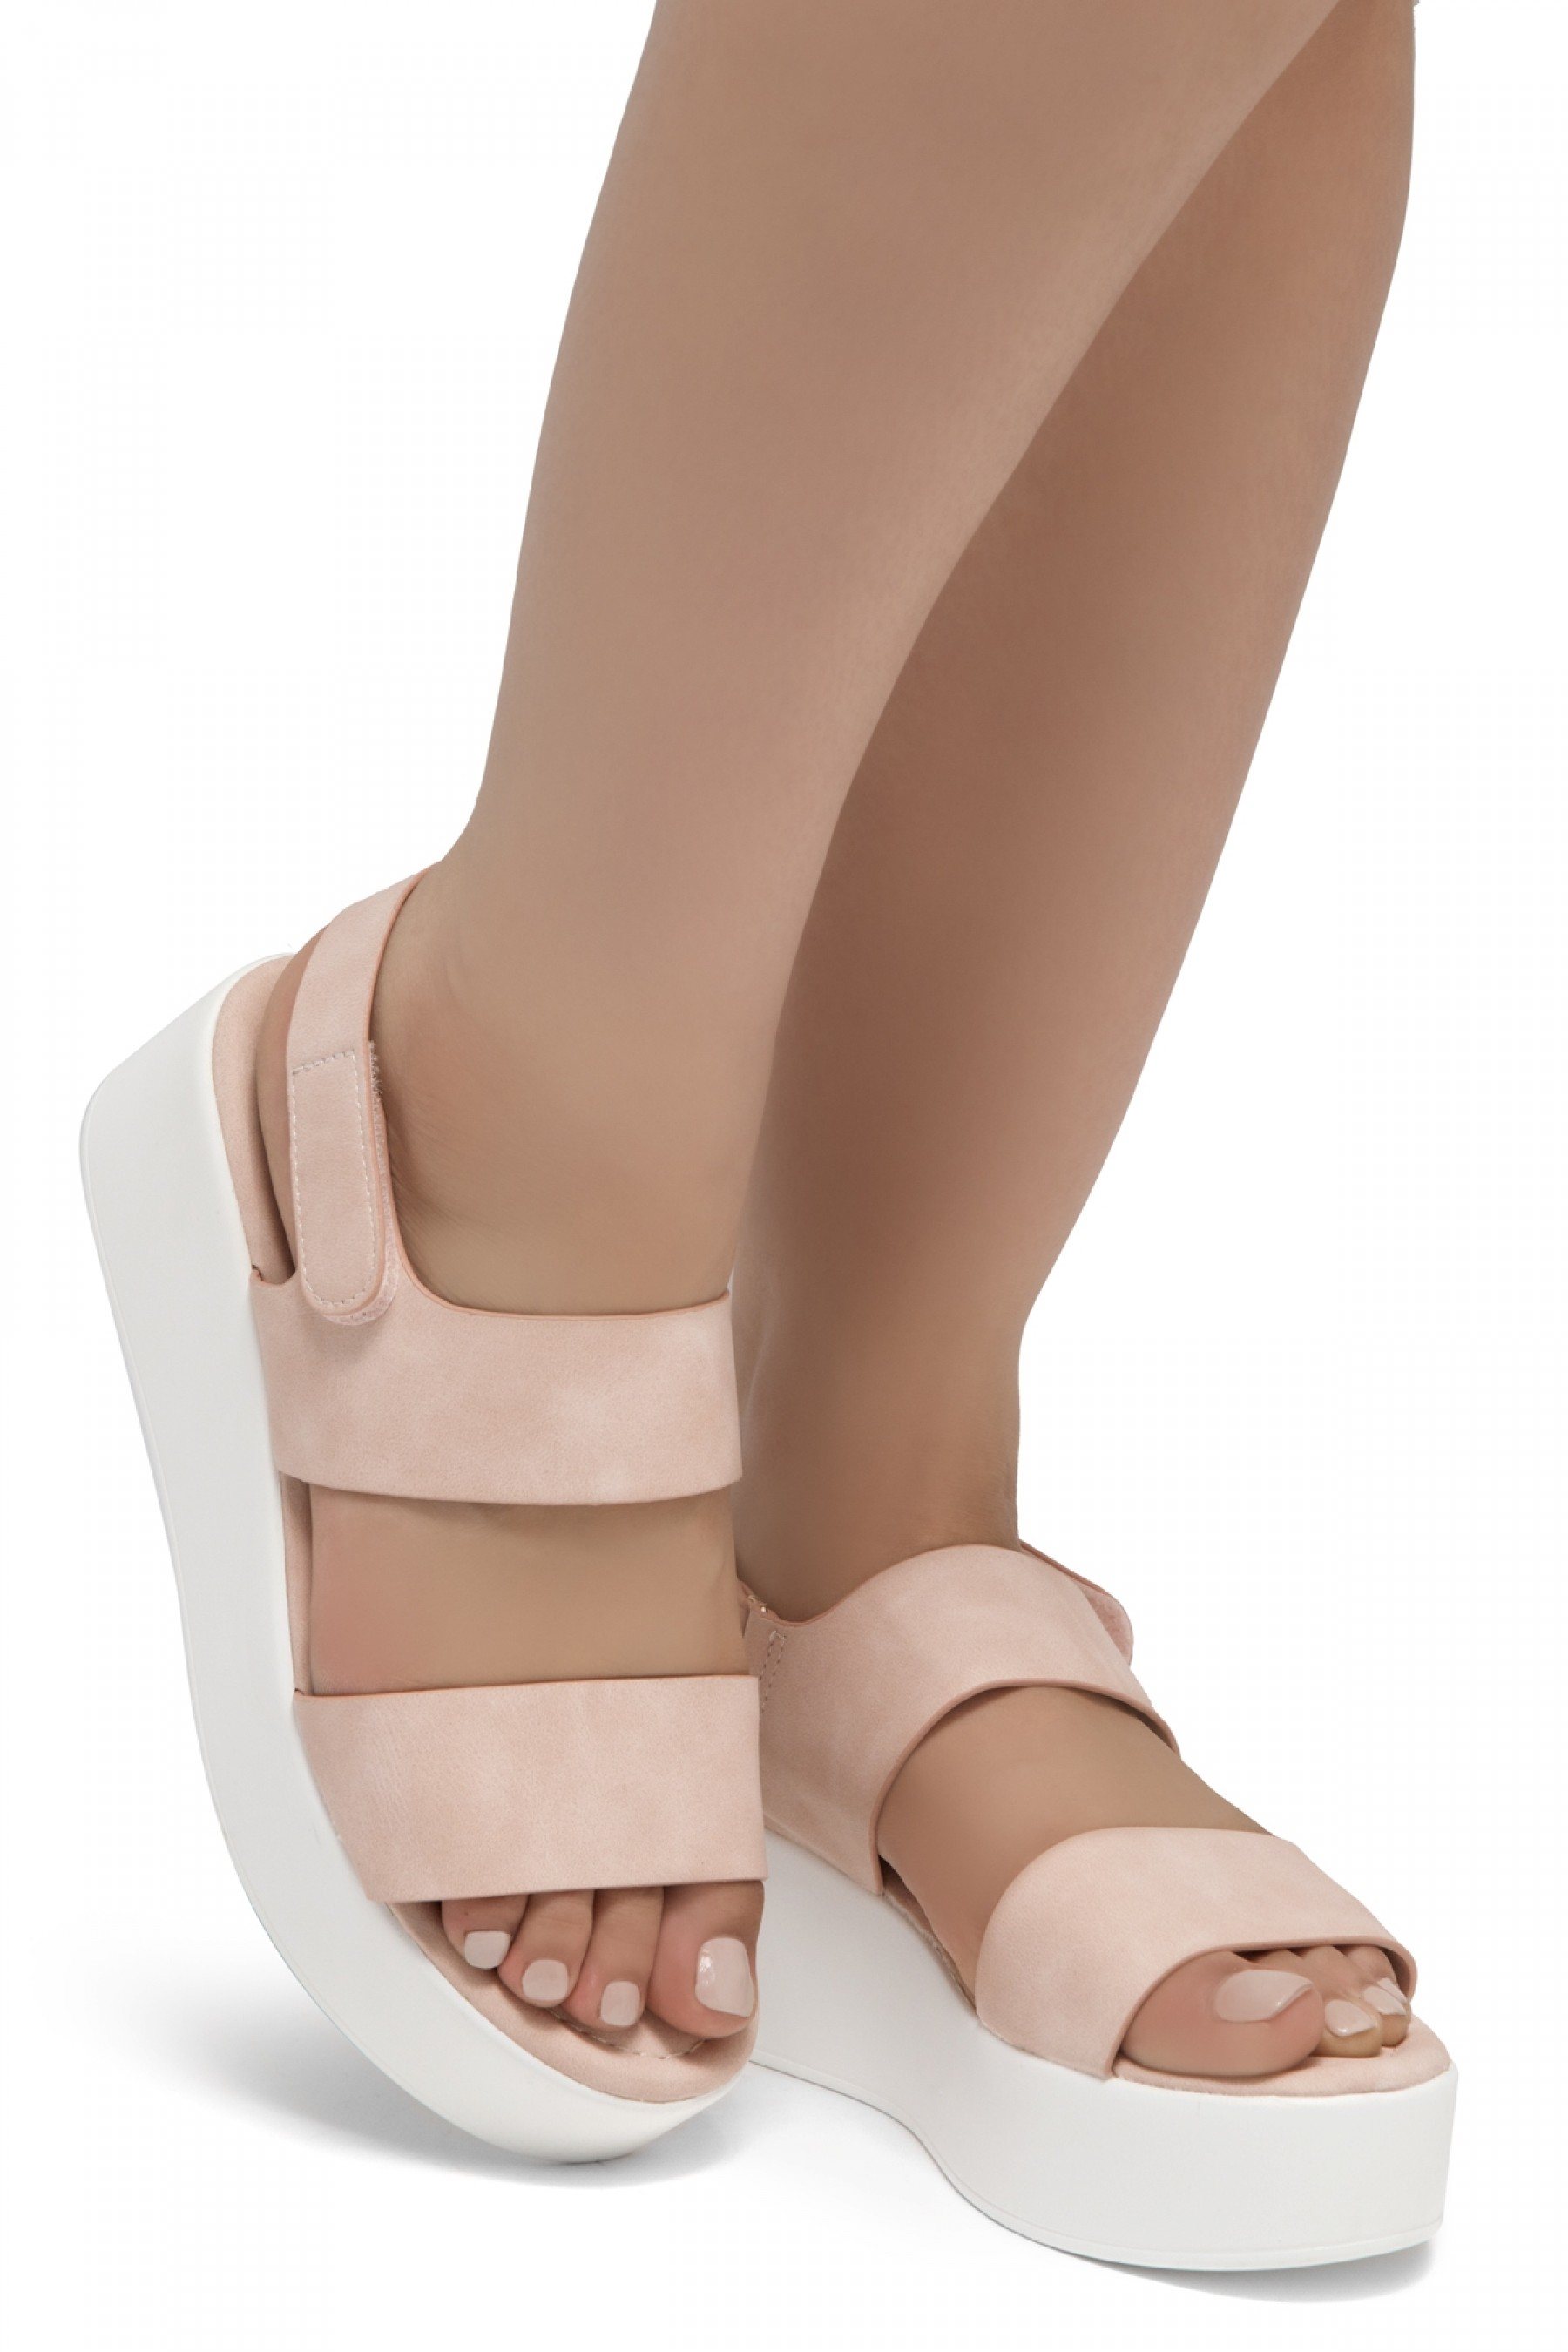 HerStyle Belma- Open Toe Velcro Strap Double-Banded Vamp with Platform Wedge (Blush)